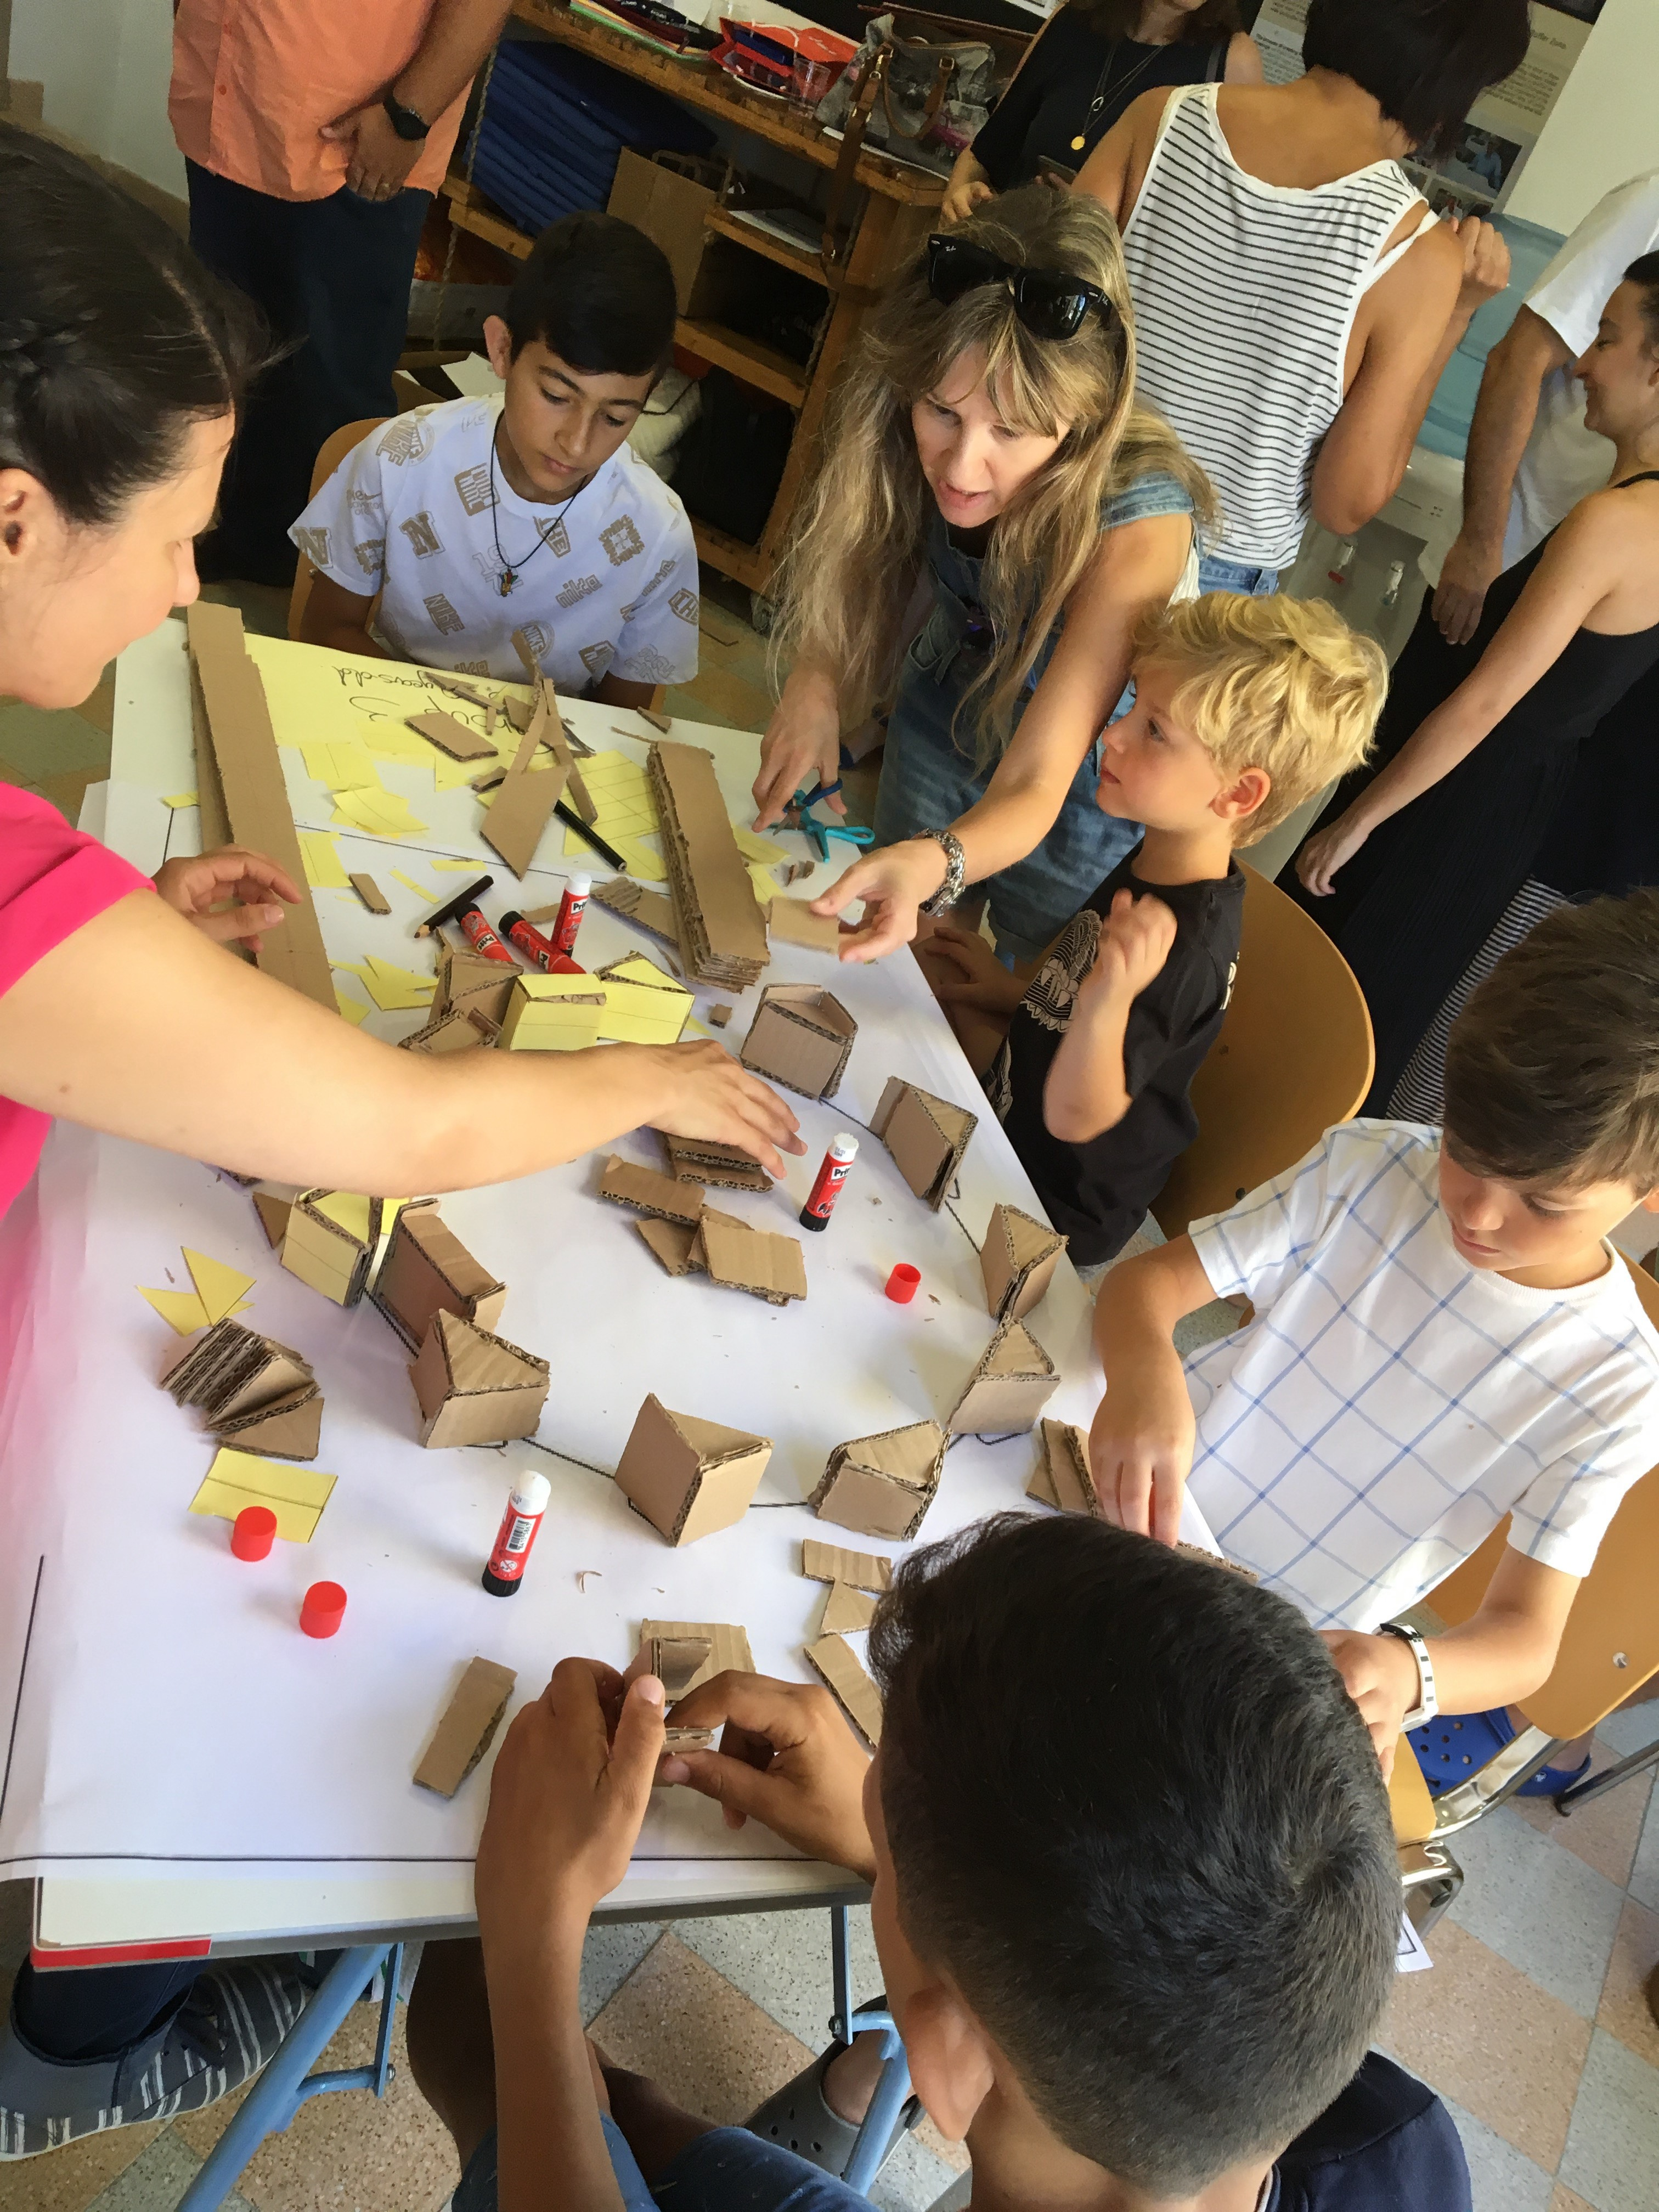 Cypriot communities piecing together their shared heritage 4